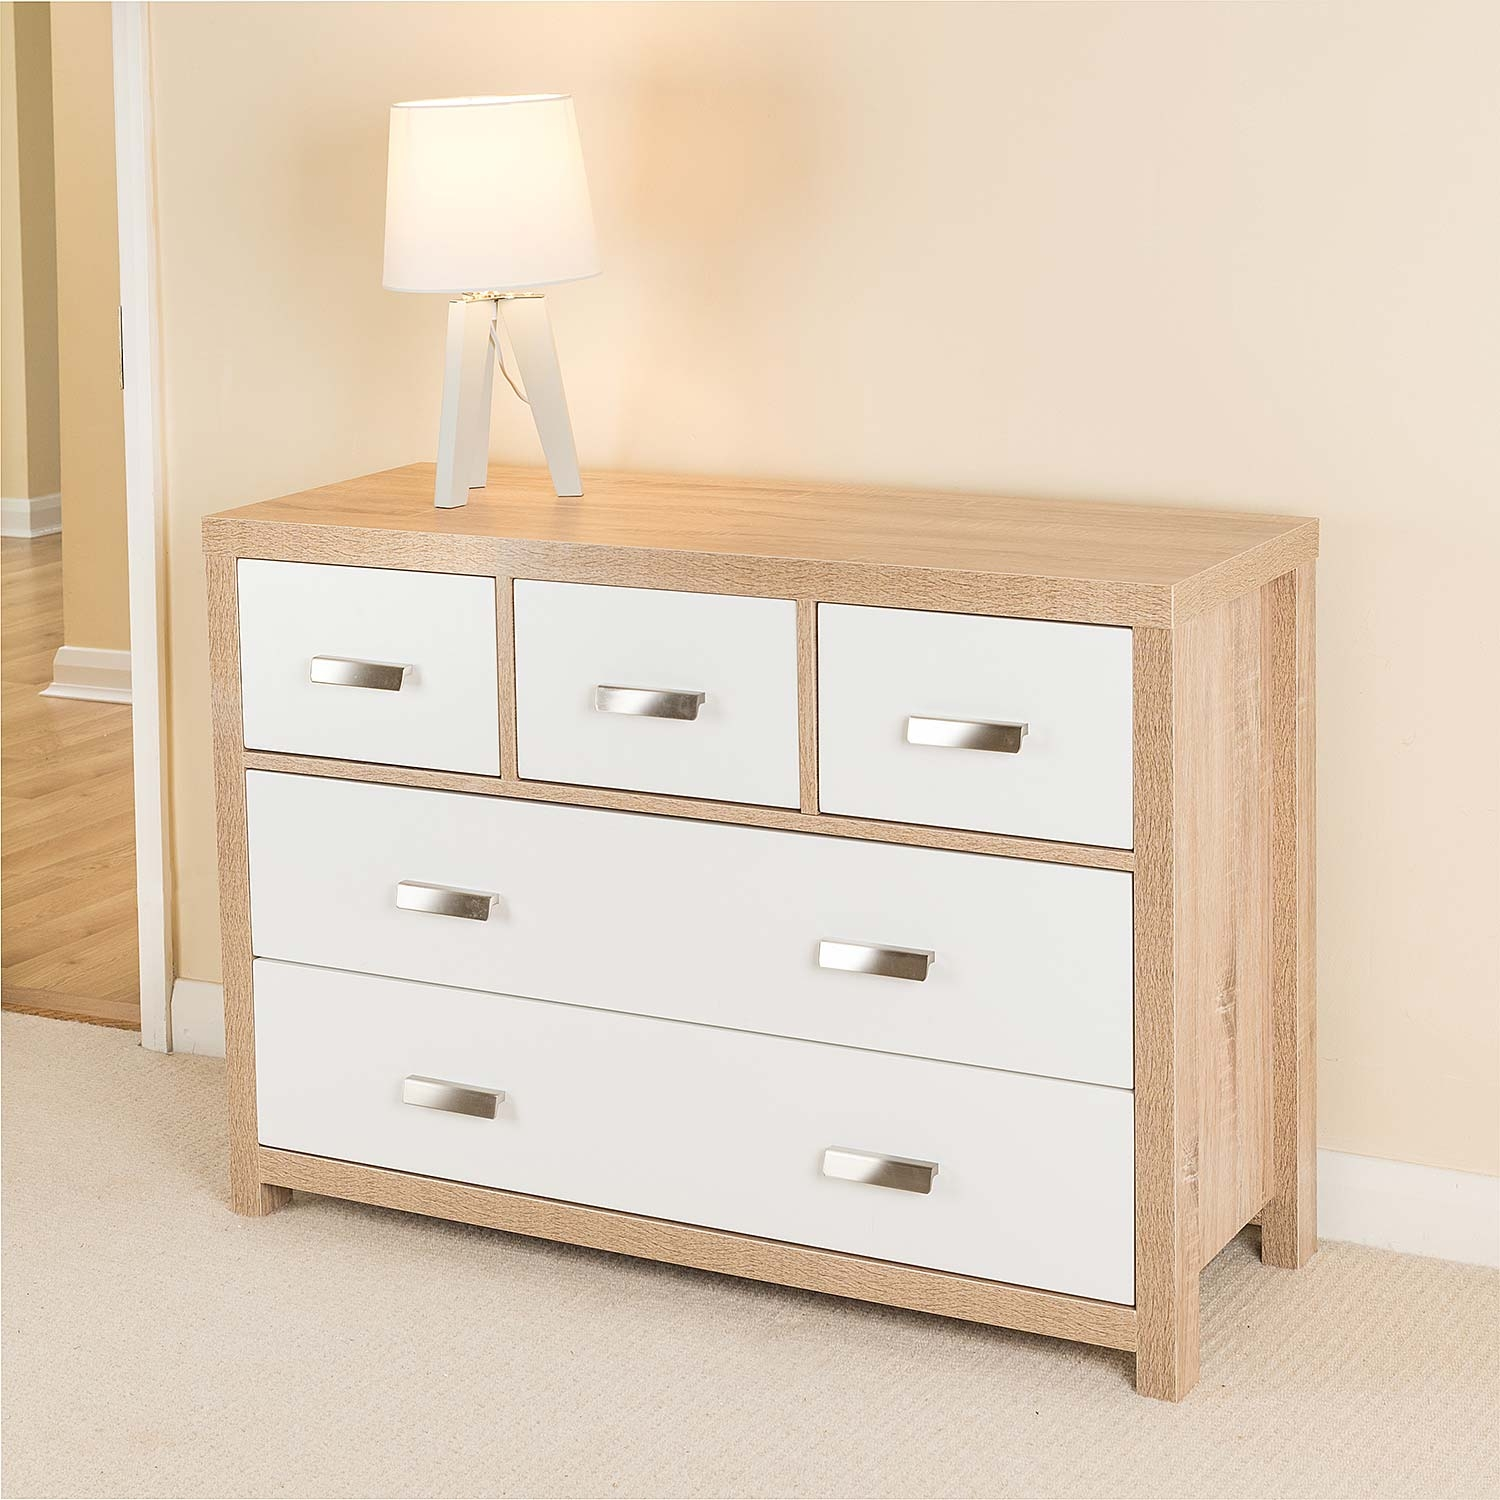 Image of Bianco Oak Effect 5 Draw Chest of Drawers